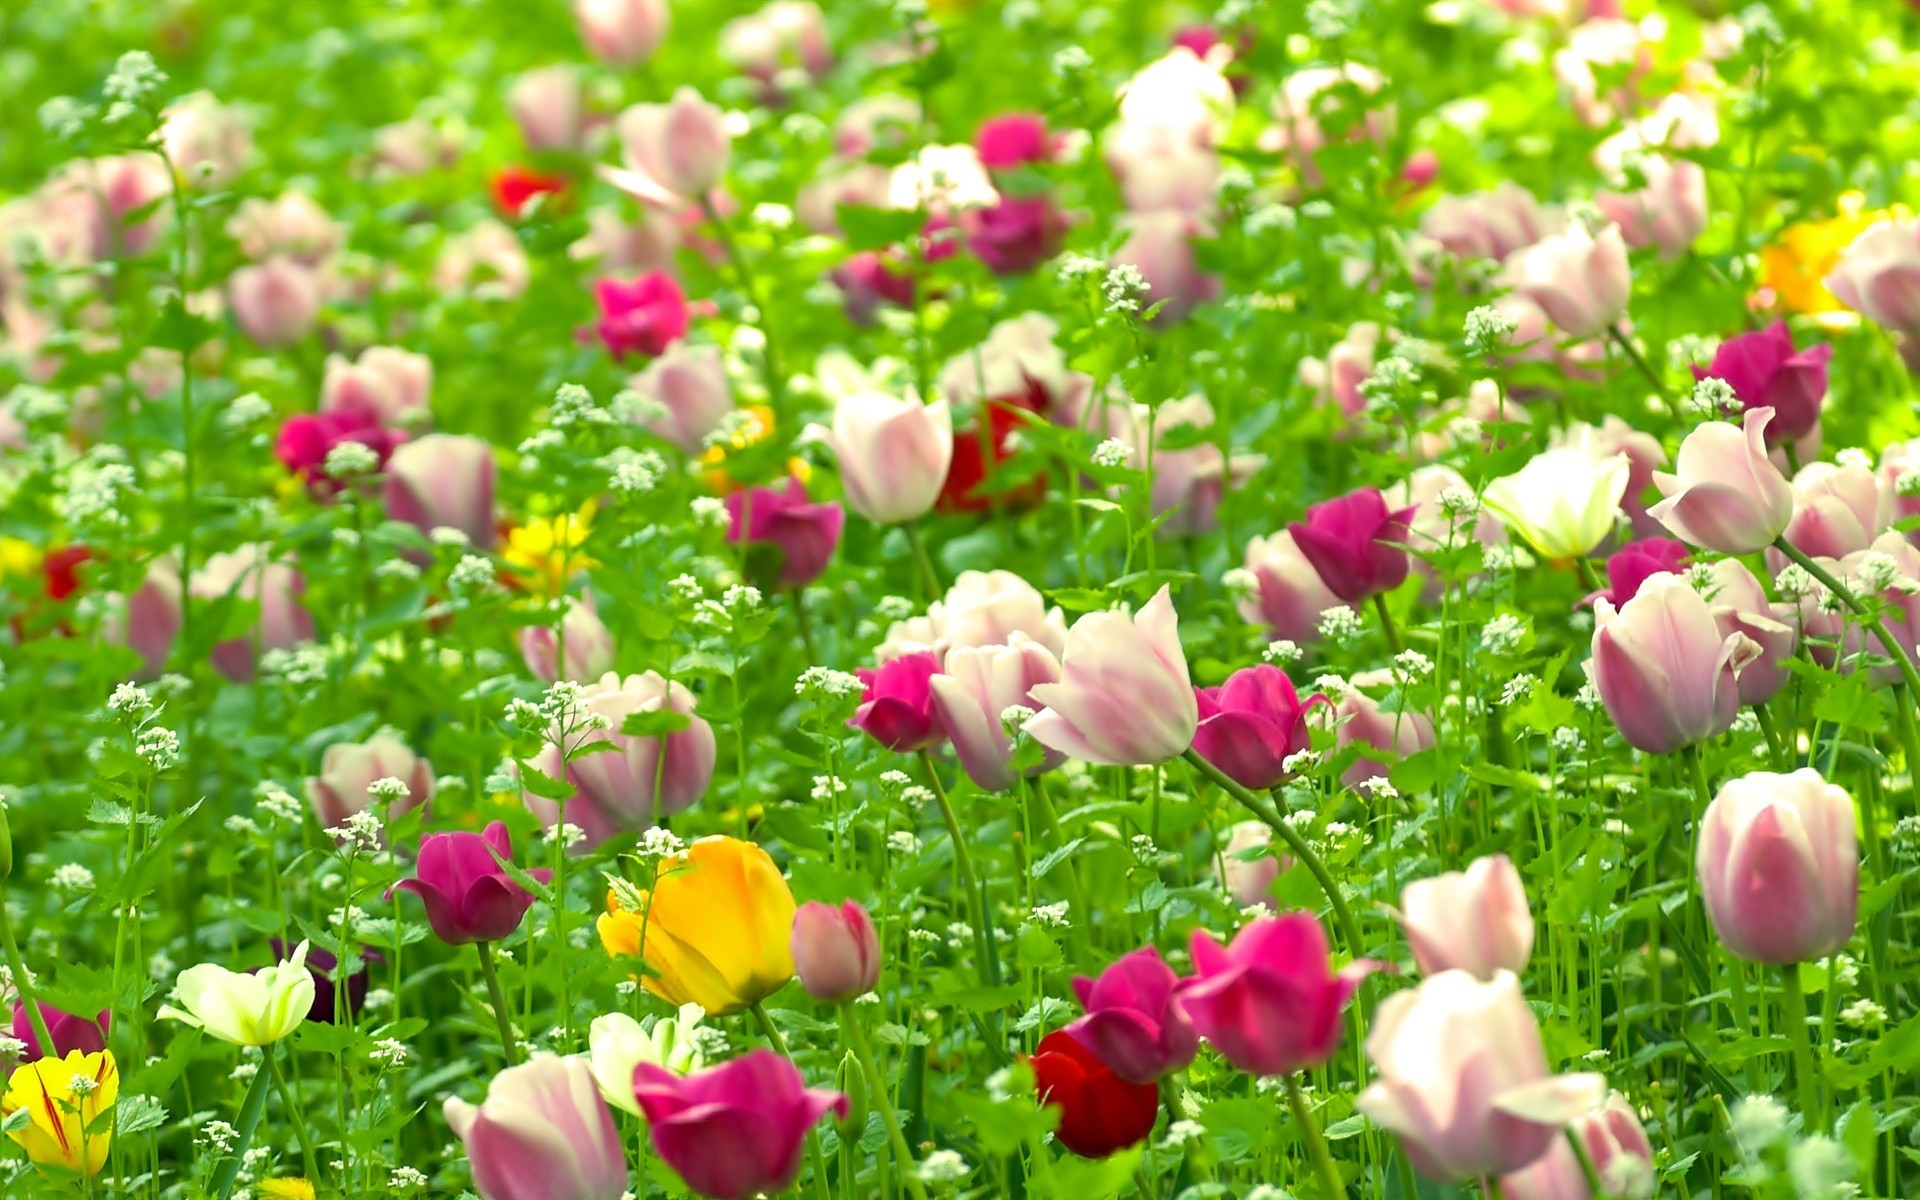 Nature Flower Wallpaper 52 Pictures